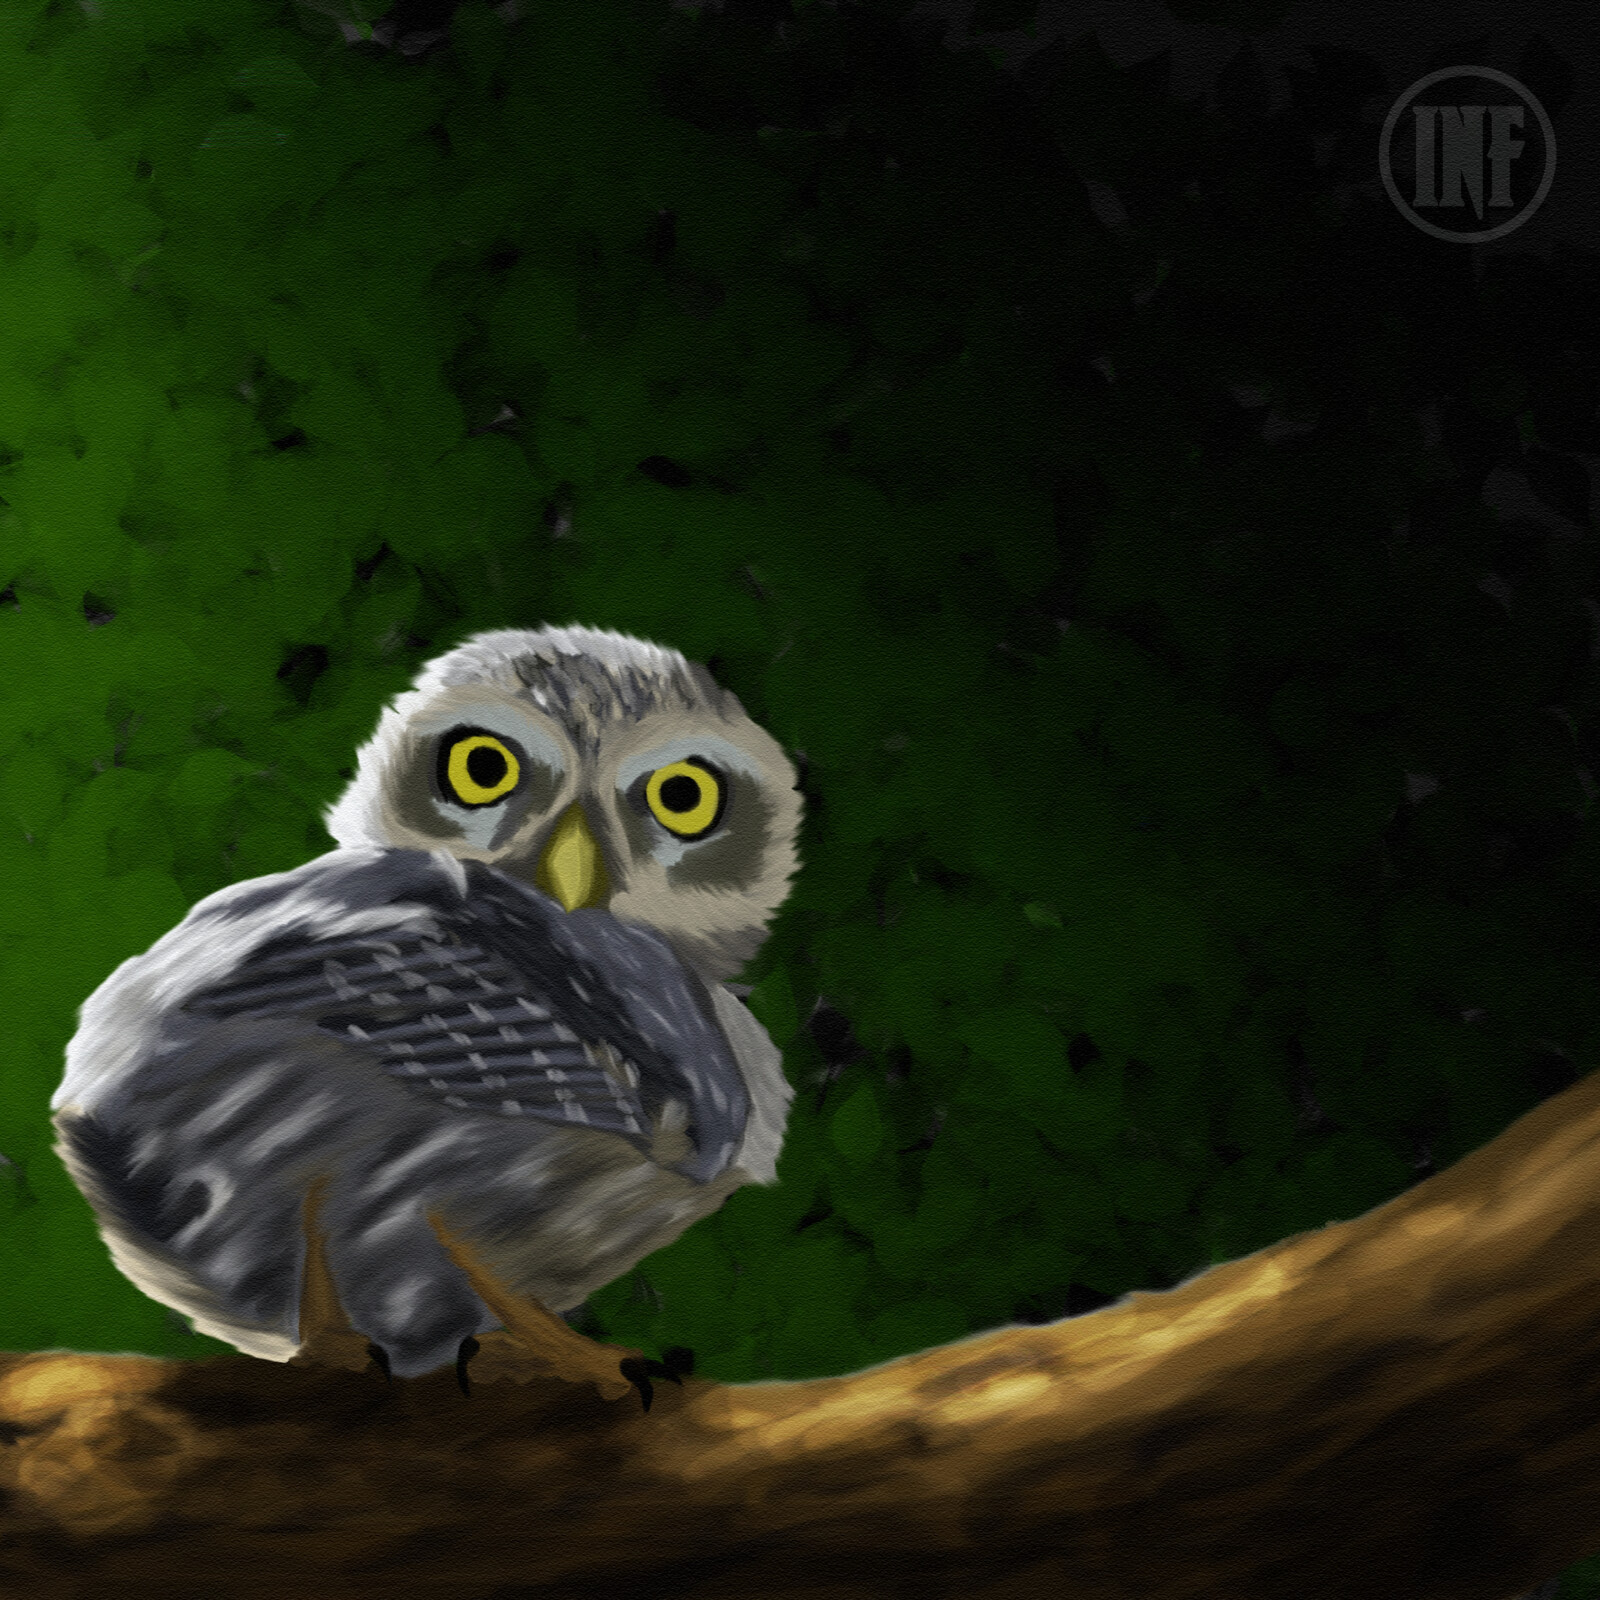 2hr Paint #8 Owl